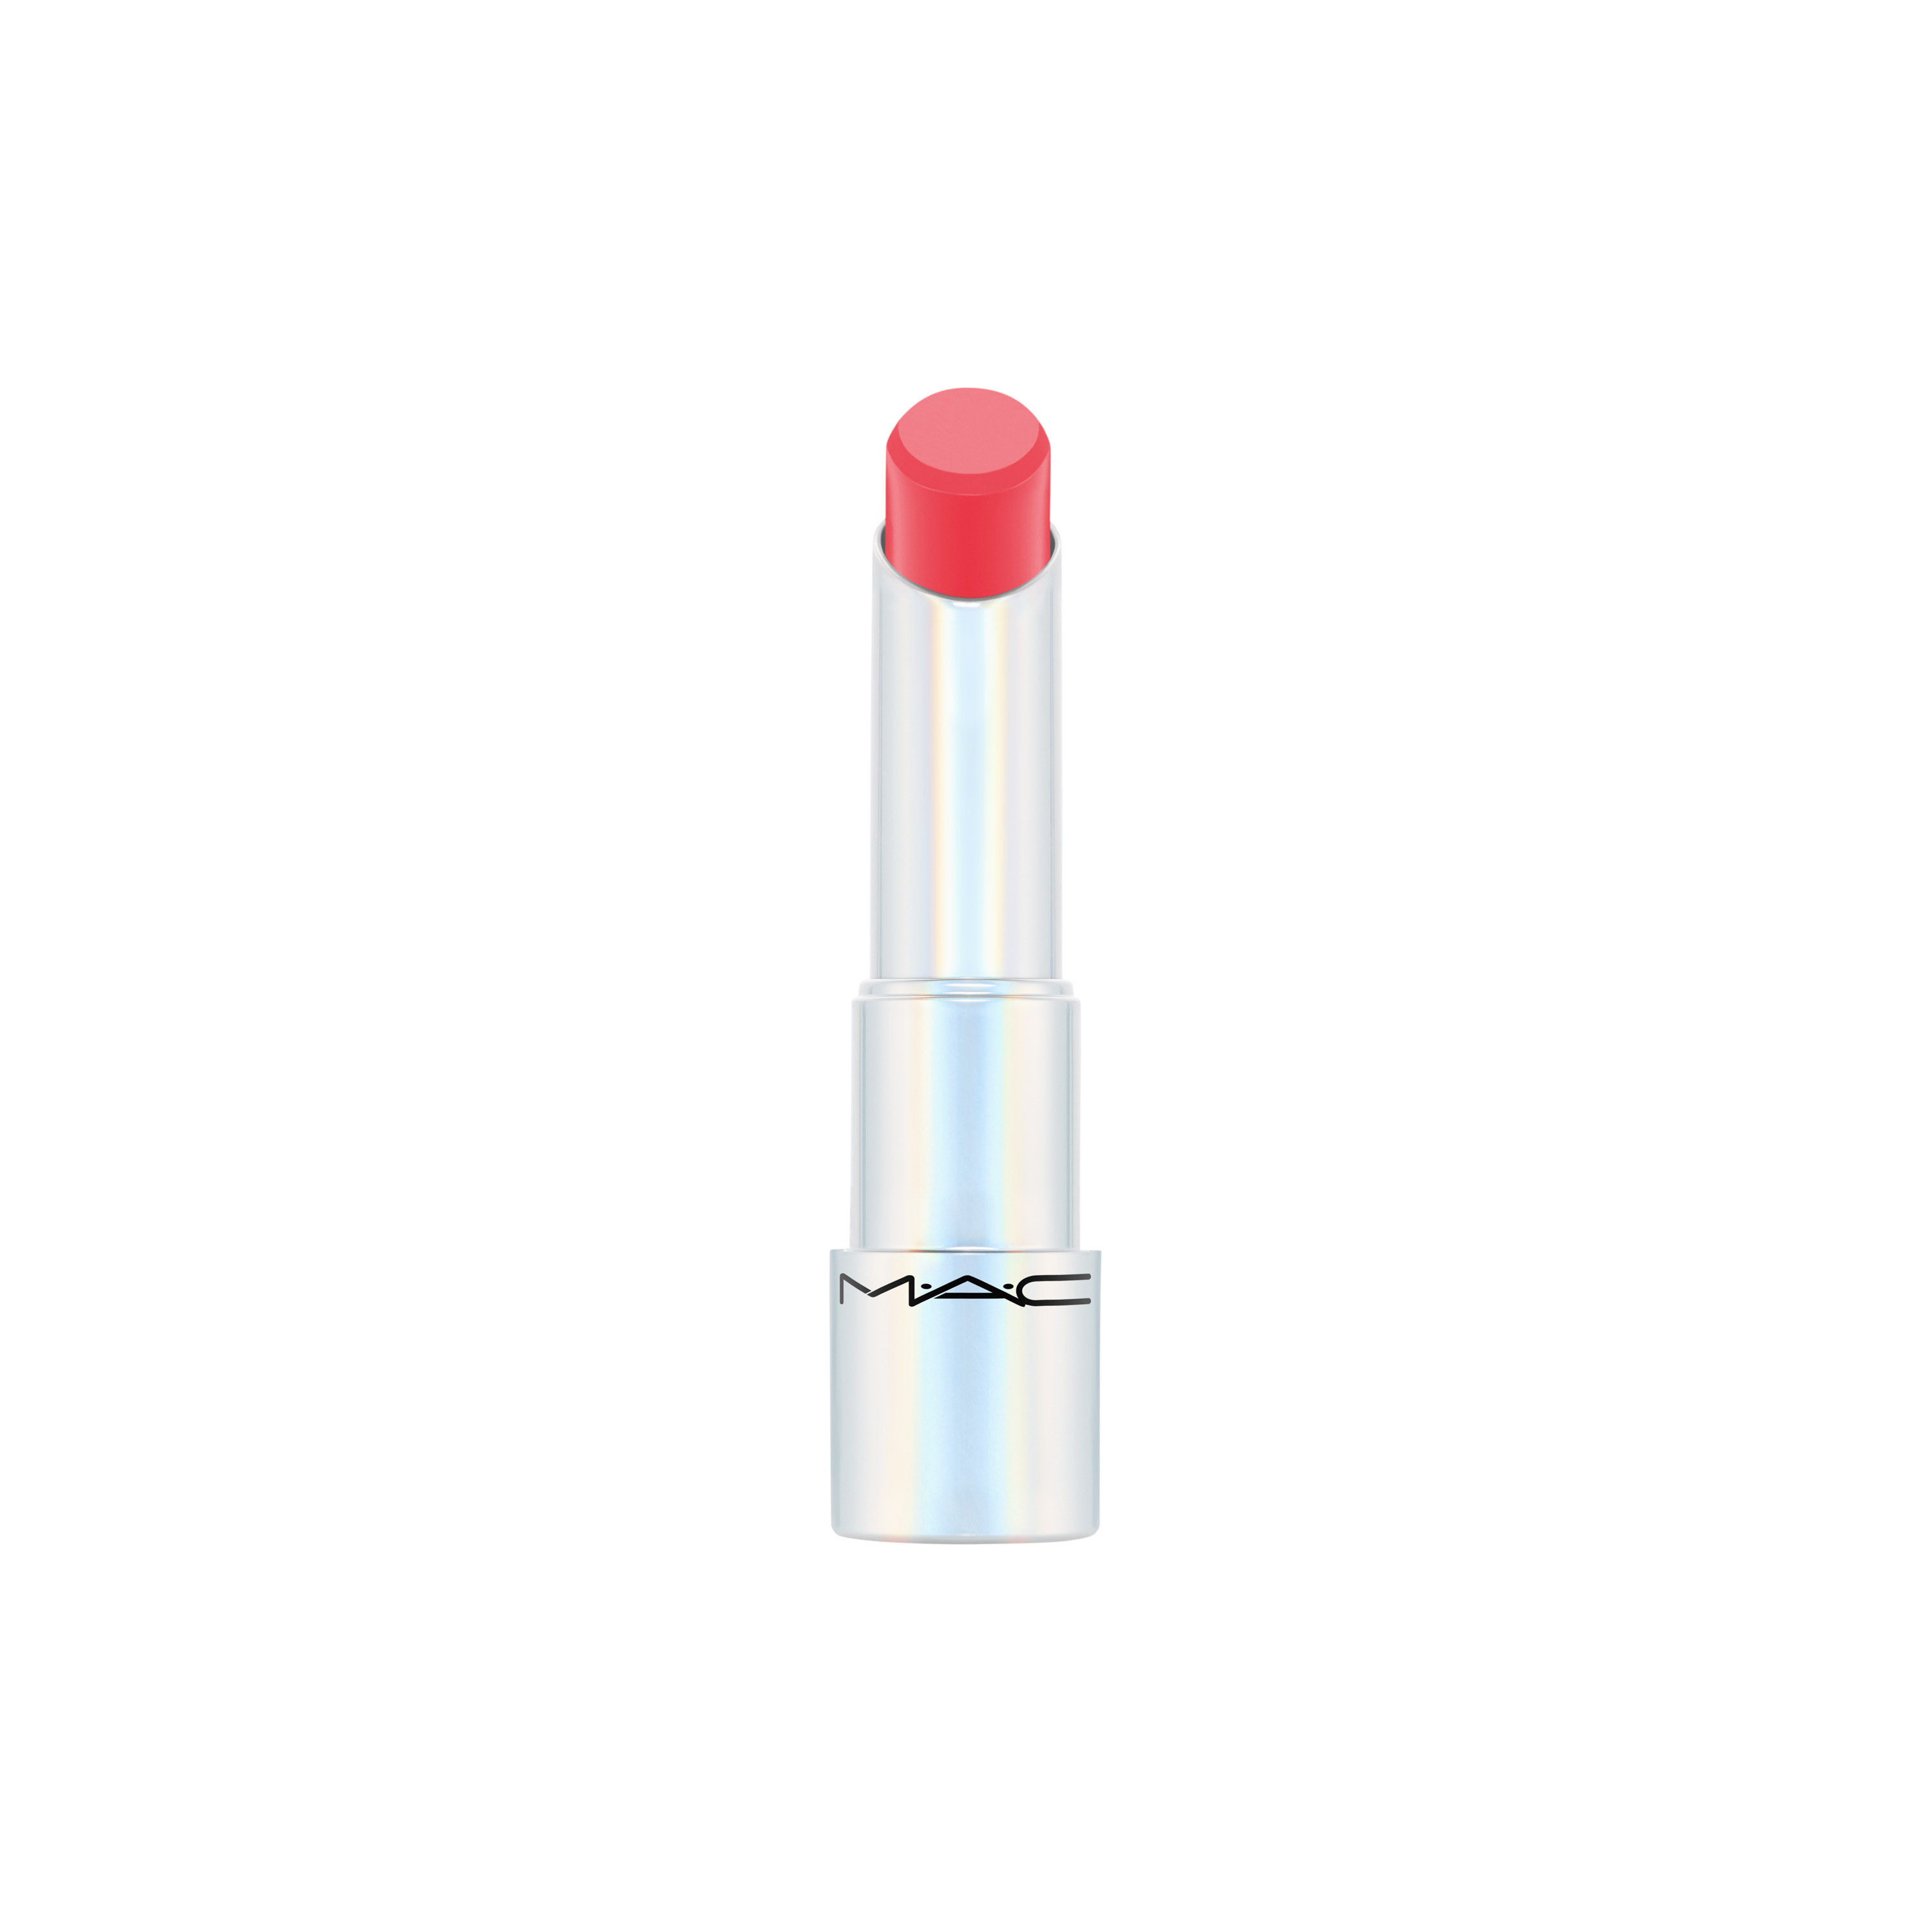 Glow Play Lip Balm - Floral Coral, FLORAL CORAL, large image number 2